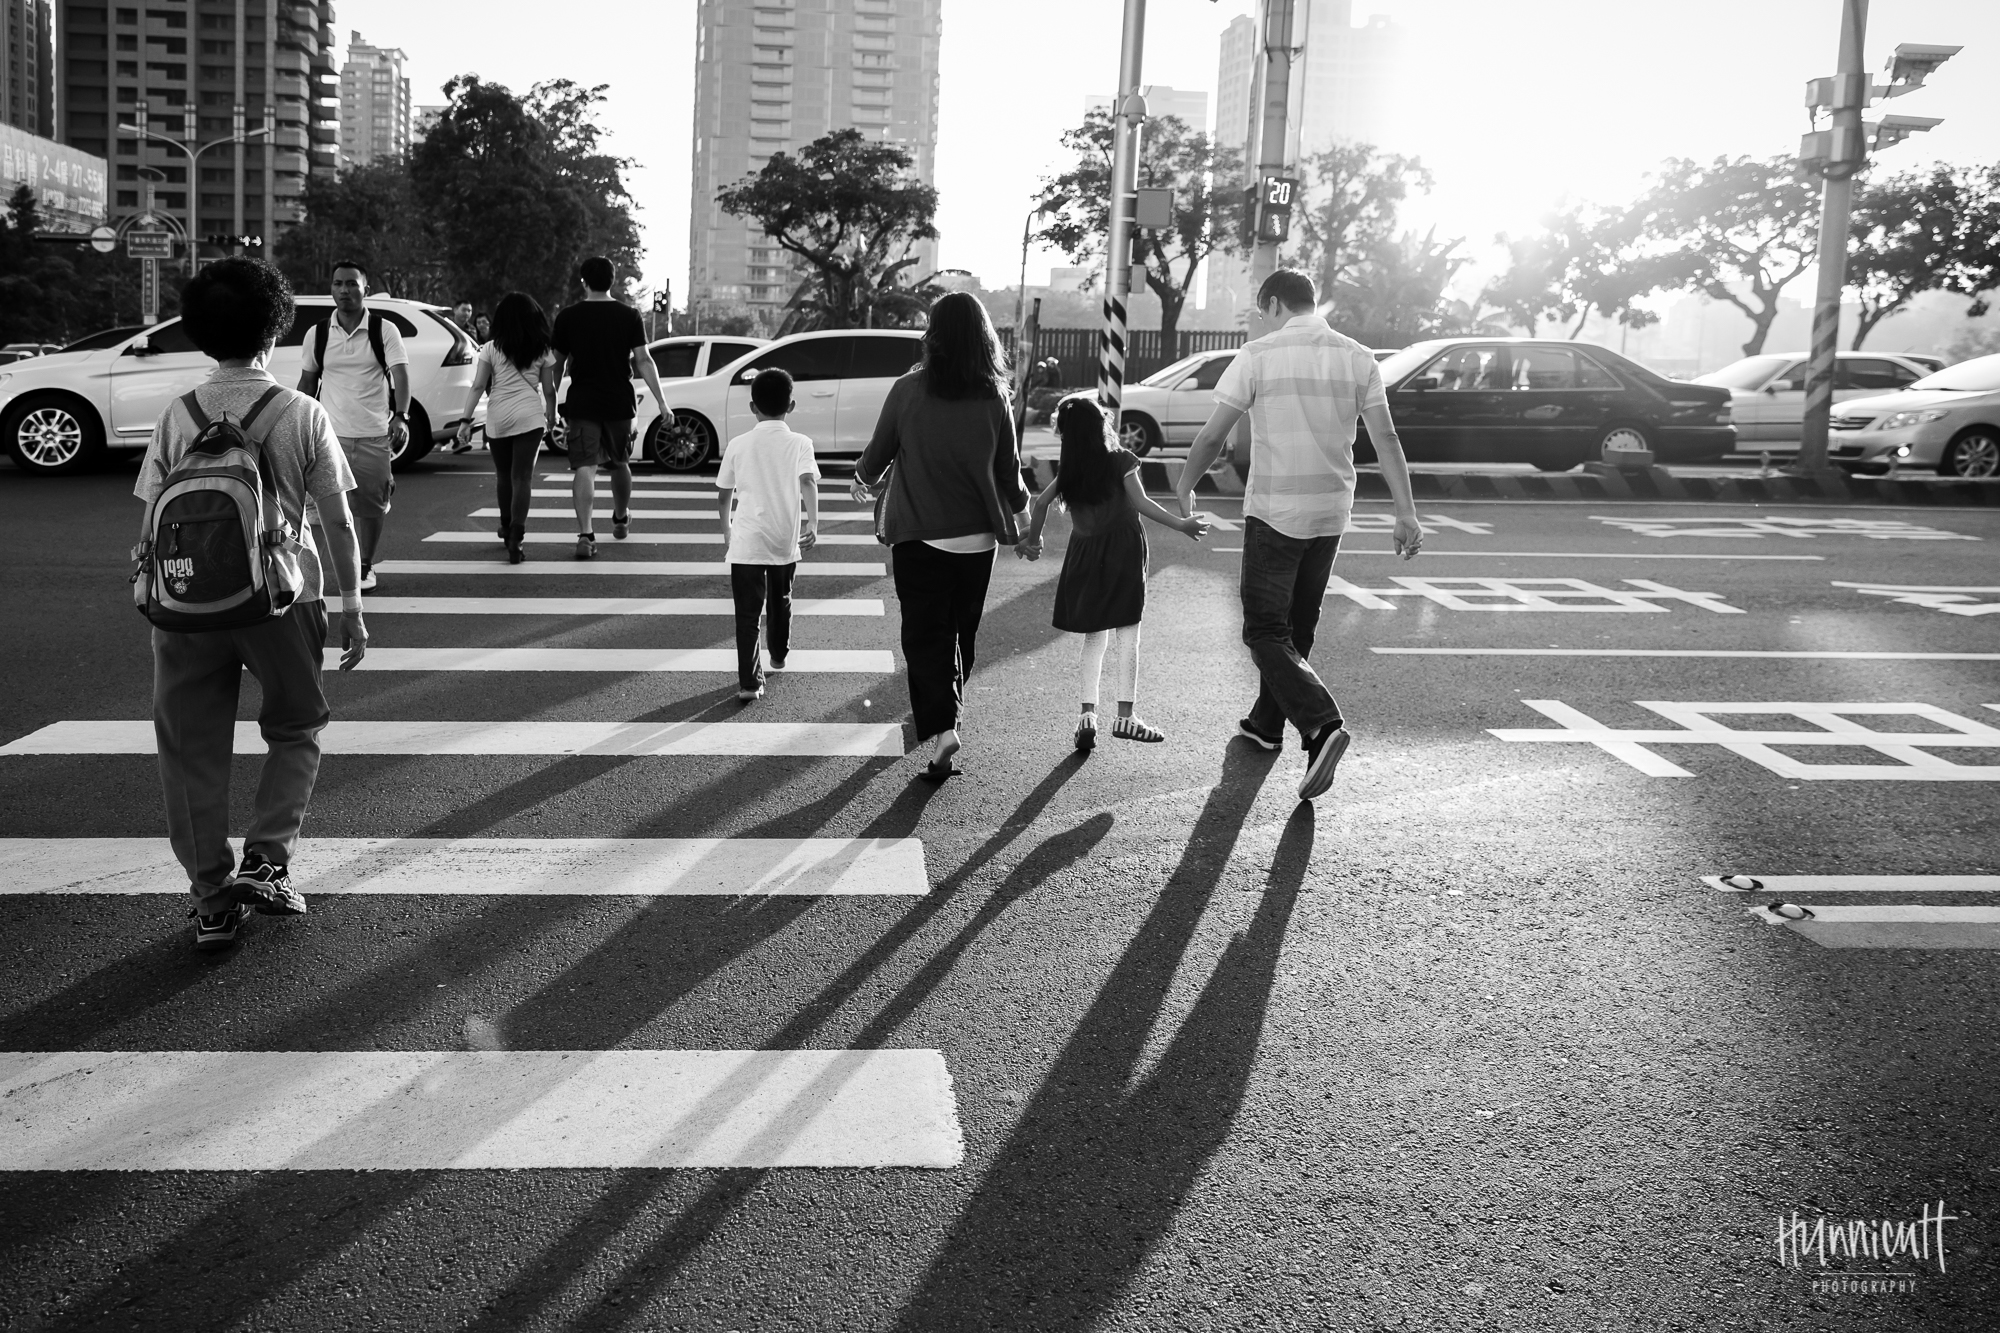 Outdoor-Explore-Neighborhood-Modern-Urban-GoldenHour-Lifestyle-Family-Photography-Taichung-Taiwan-Rebecca-Hunnicutt-Farren-Hunnicutt-Photography-22